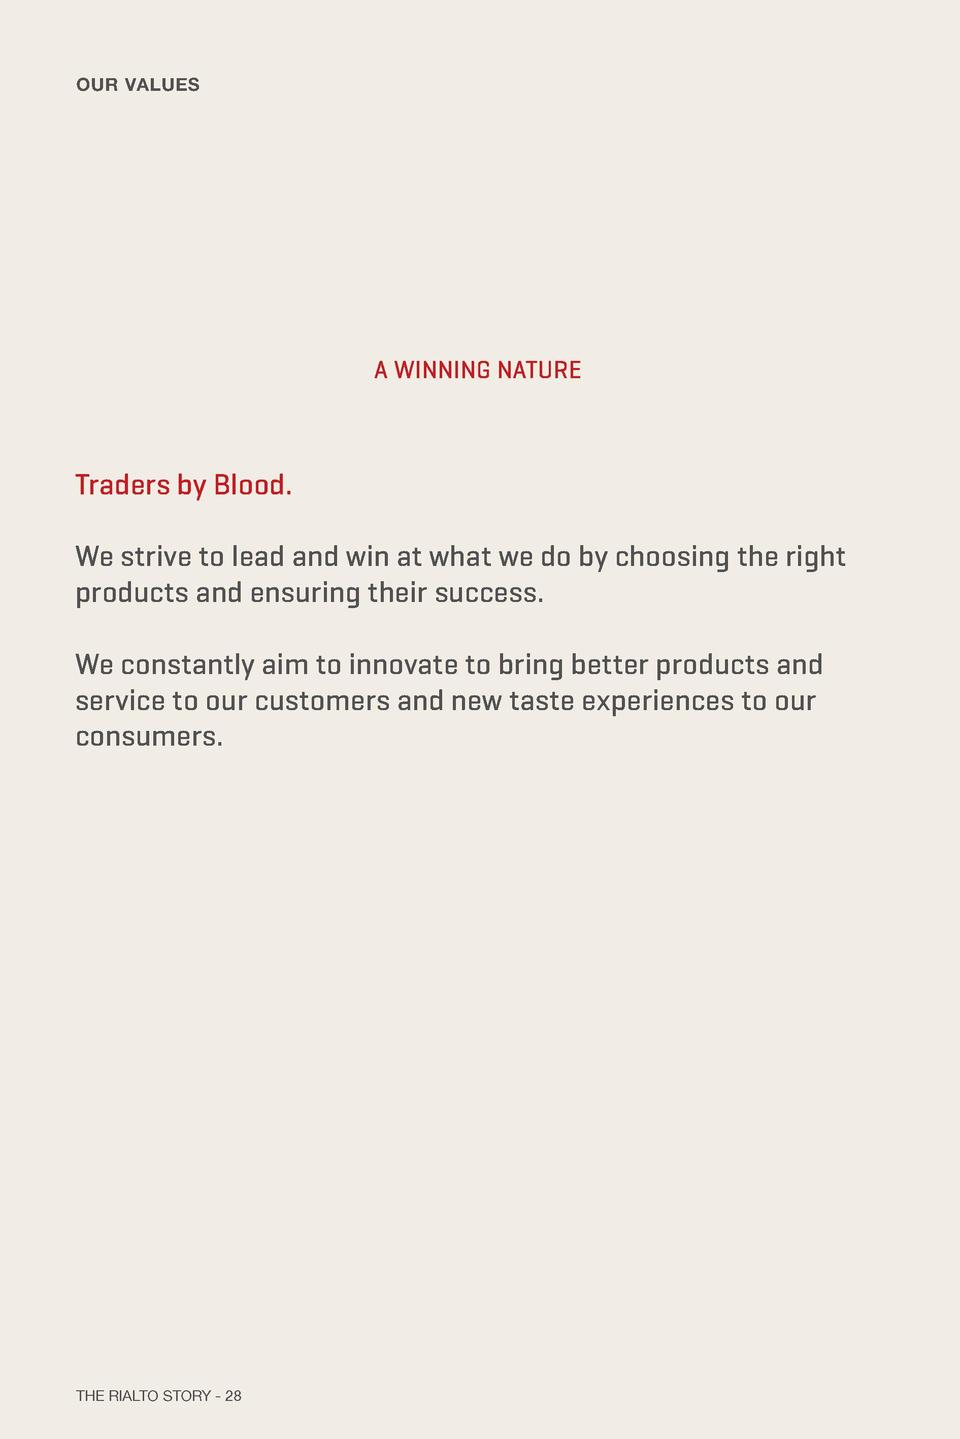 OUR VALUES  A WINNING NATURE  Traders by Blood. We strive to lead and win at what we do by choosing the right products and...